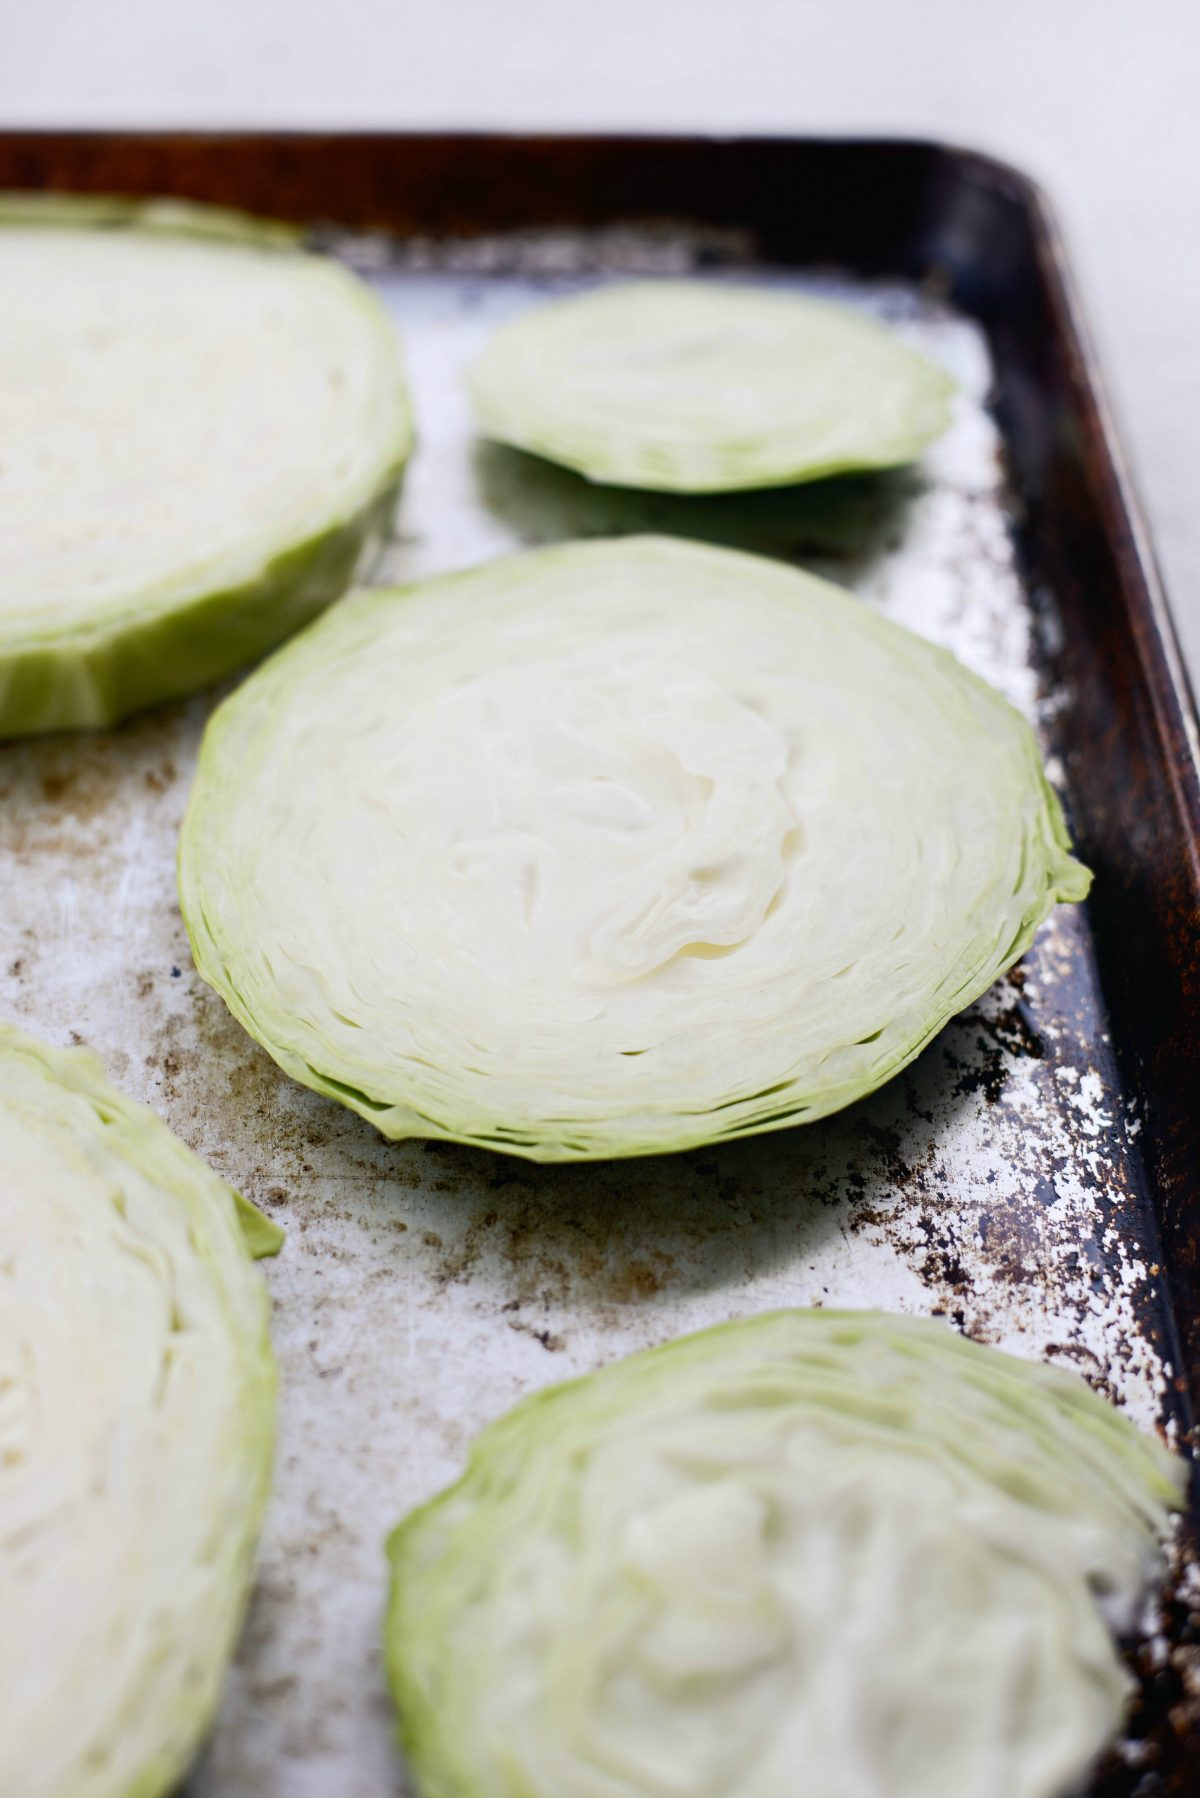 Roasted Cabbage Steaks l SimplyScratch.com #cabbage #steaks #sidedish #holiday #eats #easter #stpatricksday #irish #roasted